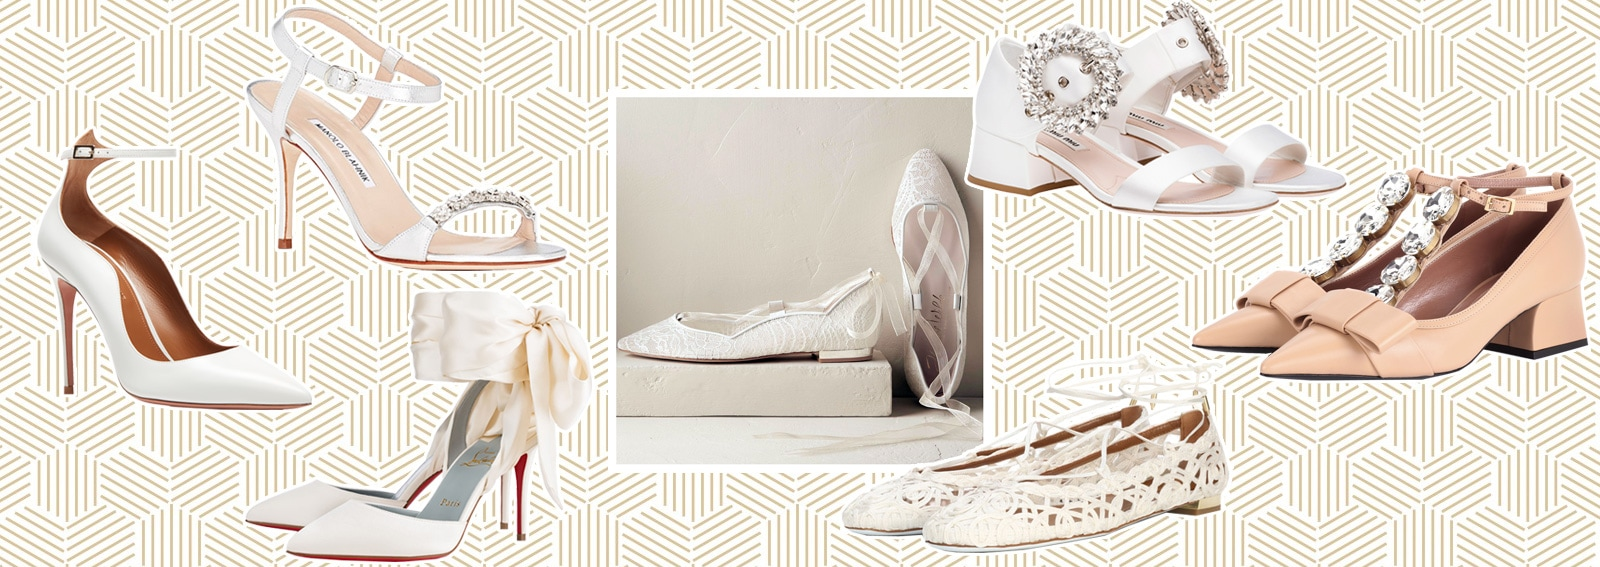 COVER_sposa_scarpe new 2017 DESKTOP